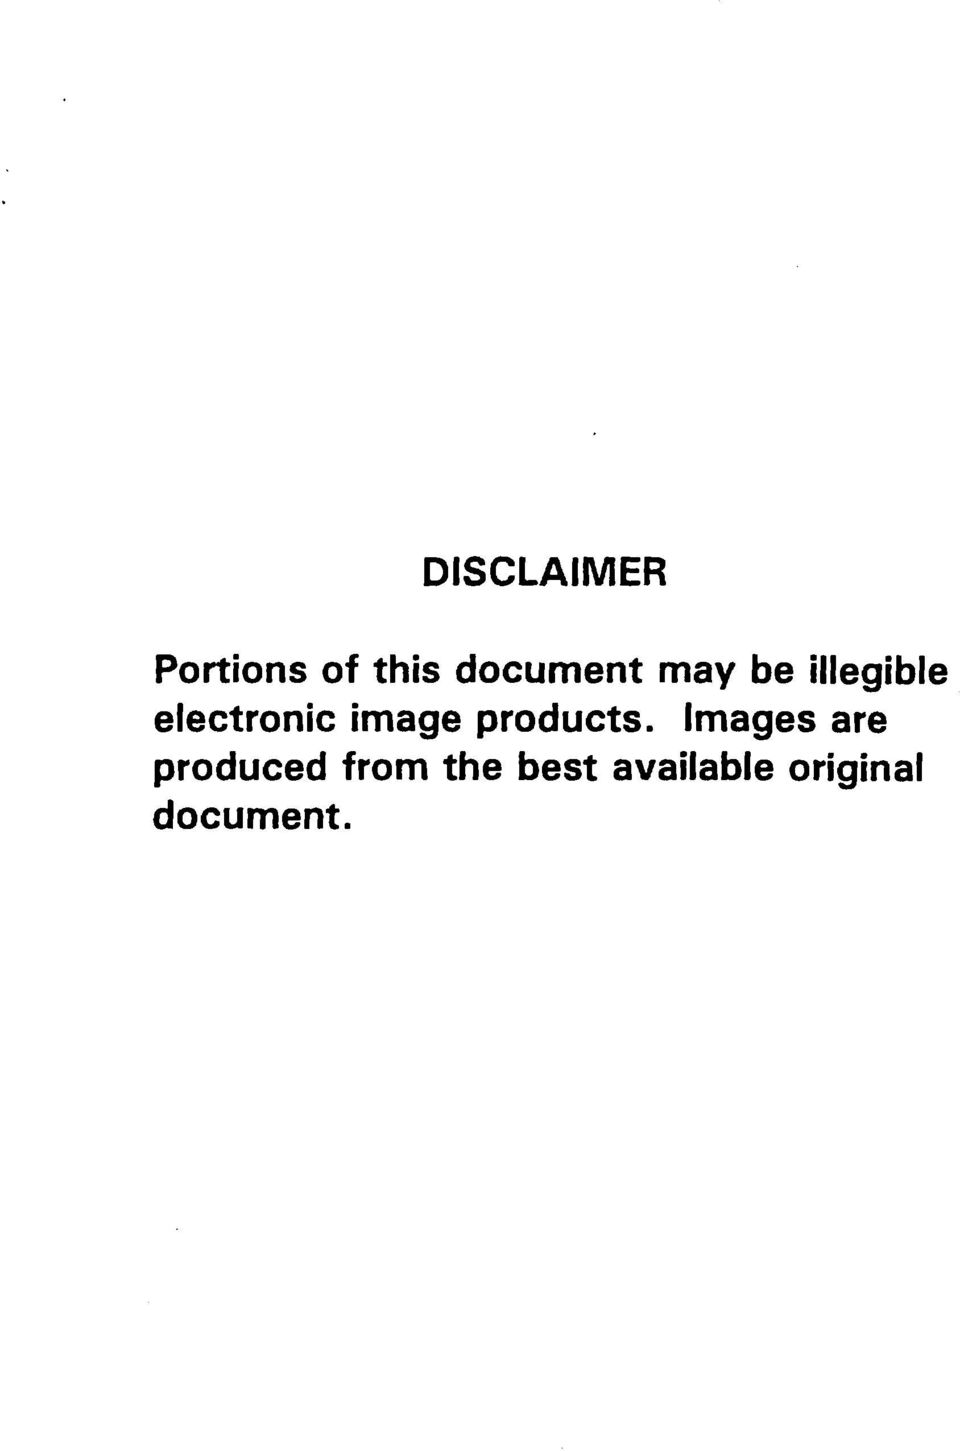 electronic image products.